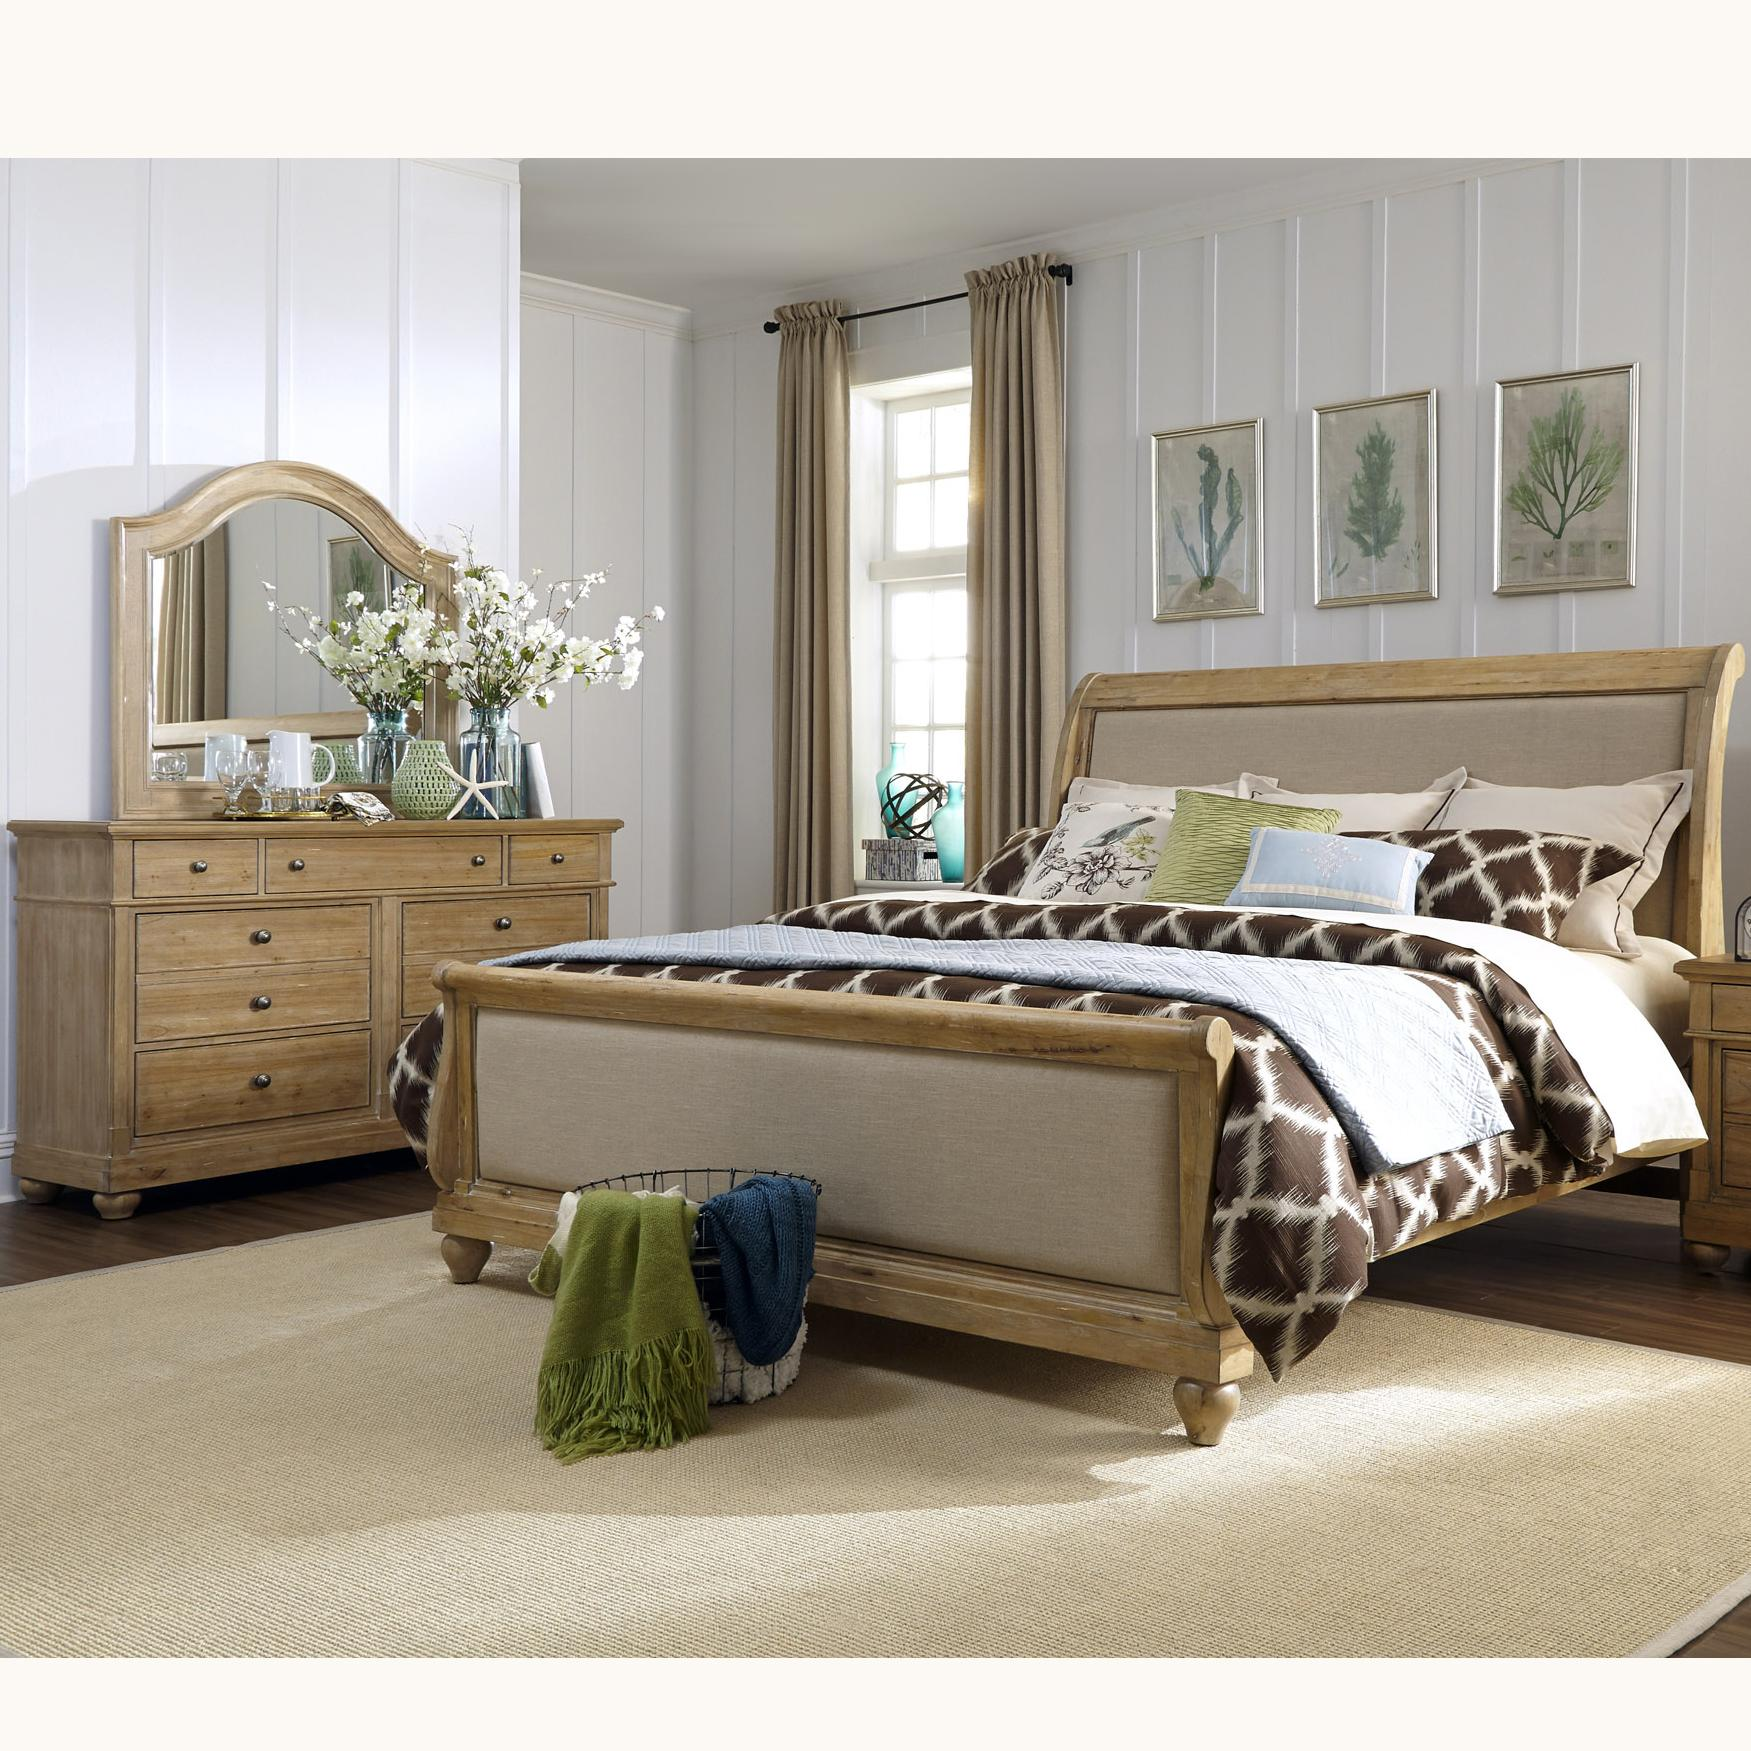 Liberty Furniture Harbor View King Bedroom Group - Item Number: 531-BR-KSLDM